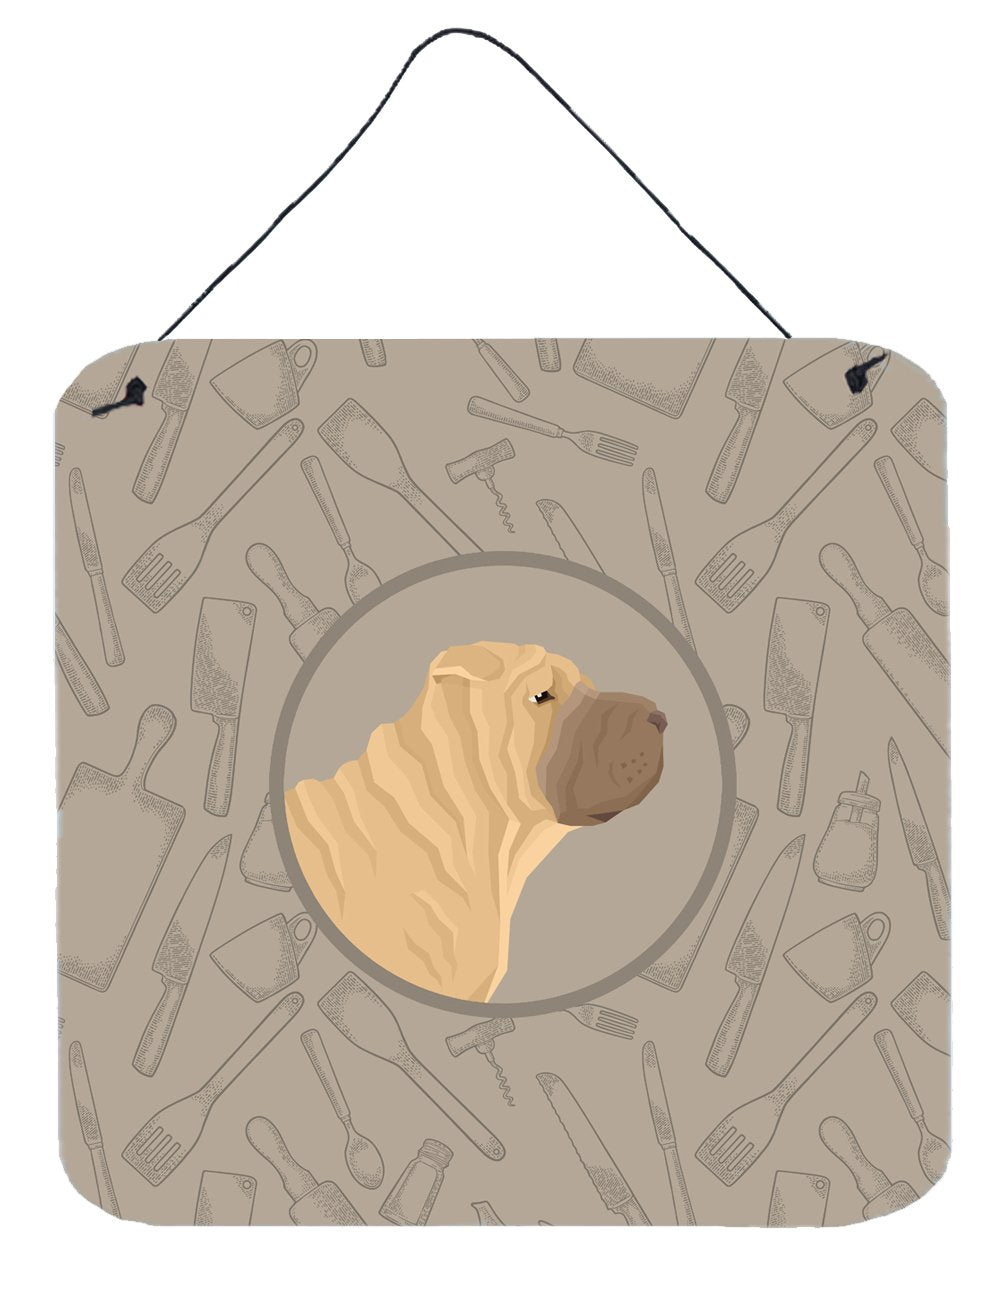 Shar Pei In the Kitchen Wall or Door Hanging Prints CK2209DS66 by Caroline's Treasures